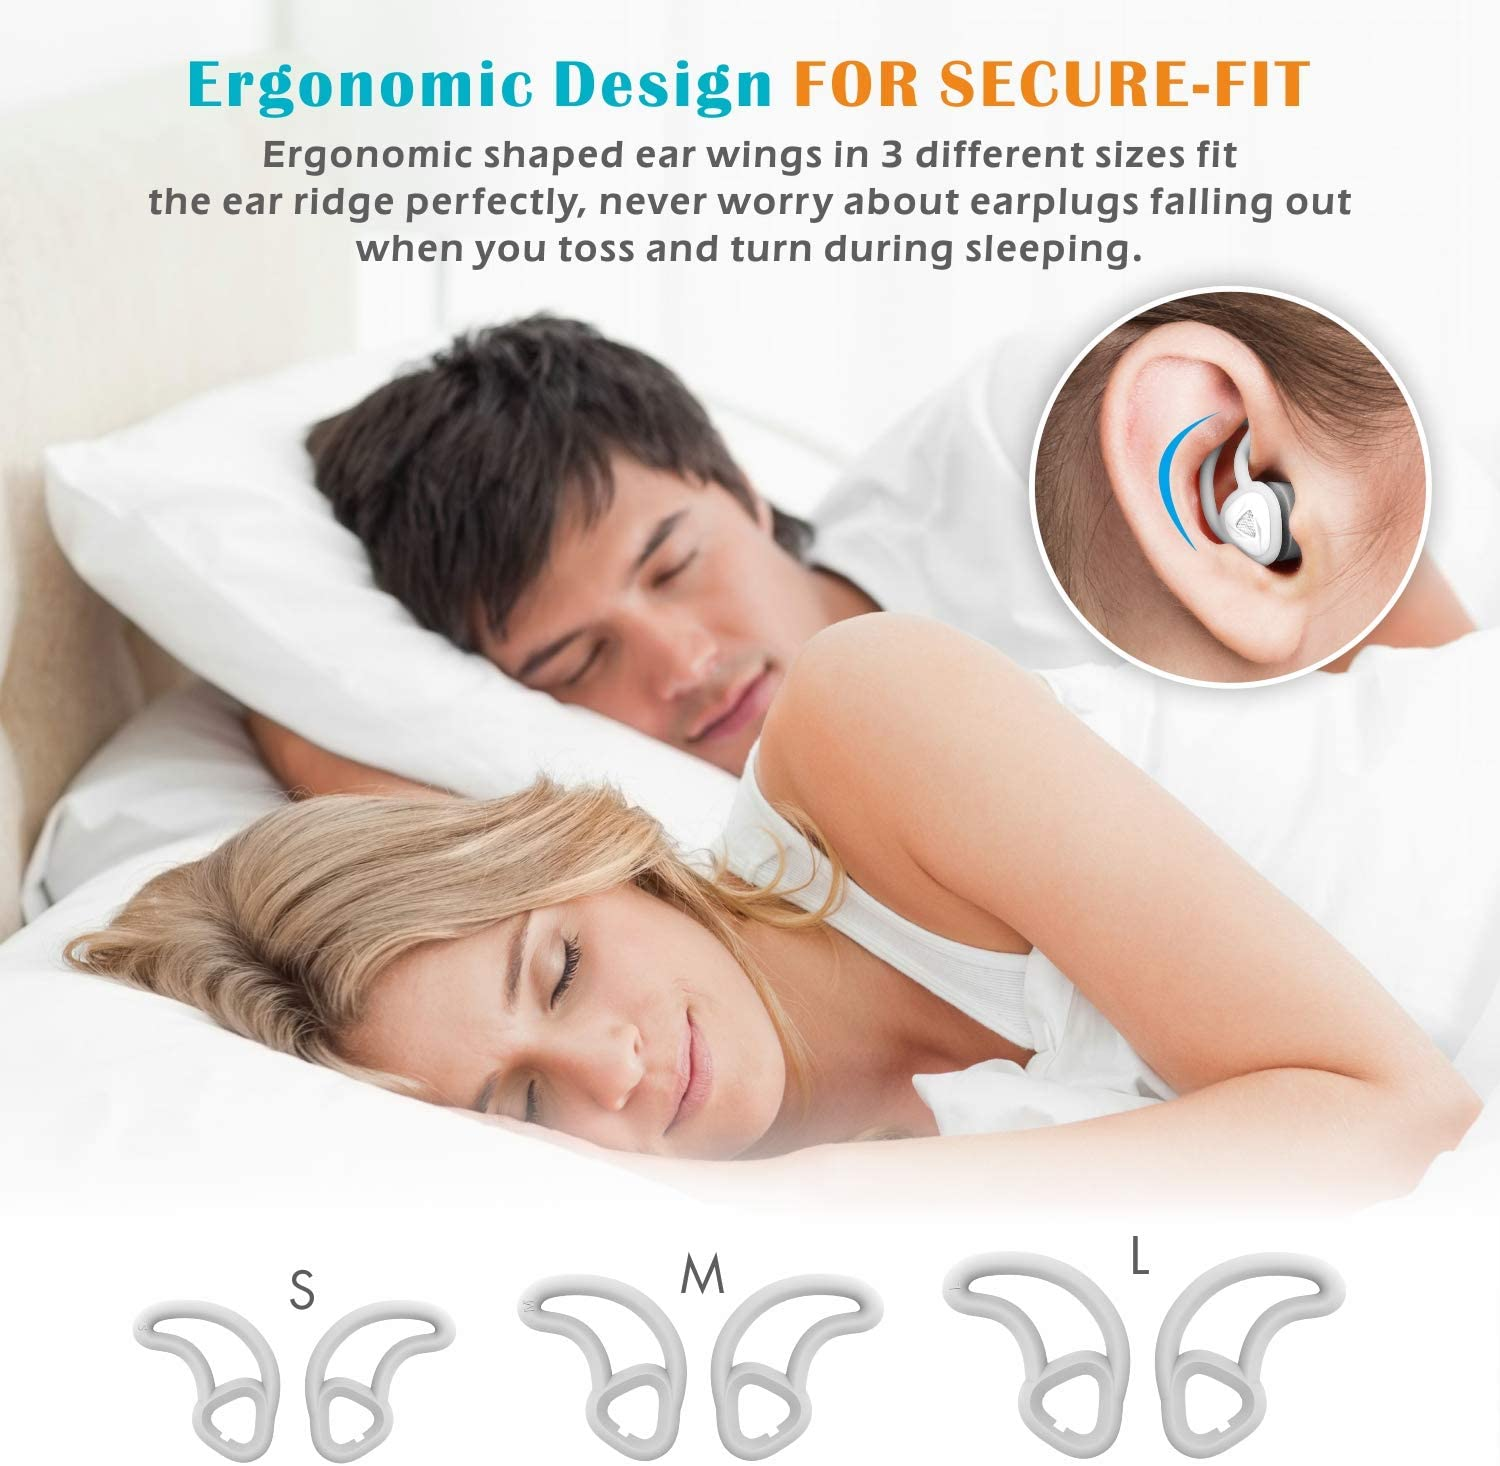 2020 New Design Work and Noise Reduction snoring 33db Hearprotek Noise Cancelling Sound Blocking Soft Sleep earplugs with Foam eartips for Side Sleepers Ear Plugs for Sleeping